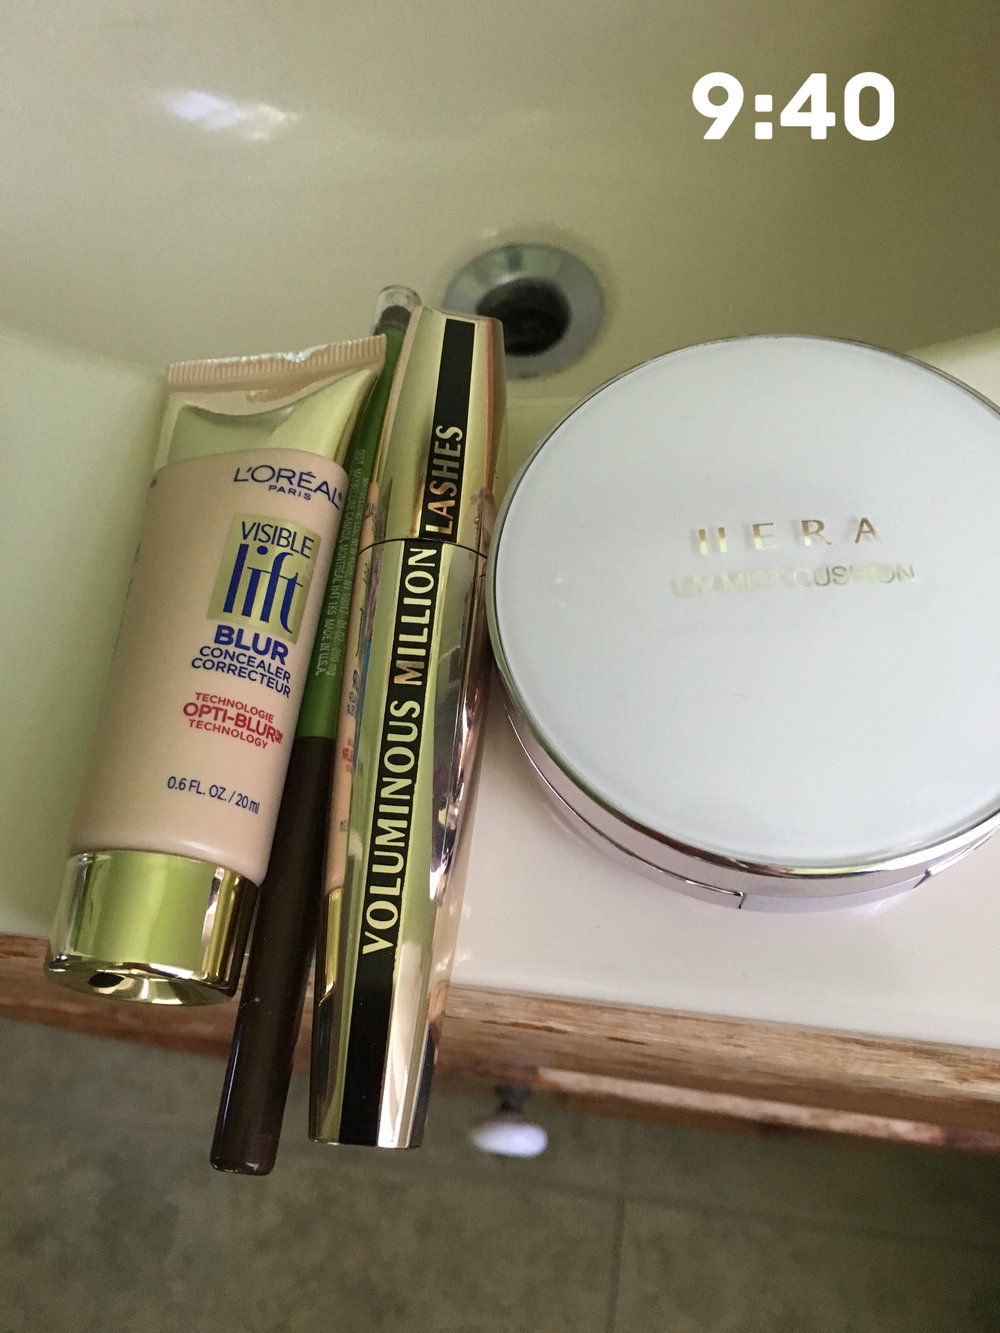 All drugstore products, except for the Hera cushion compact (LOVE), which is from Memebox.